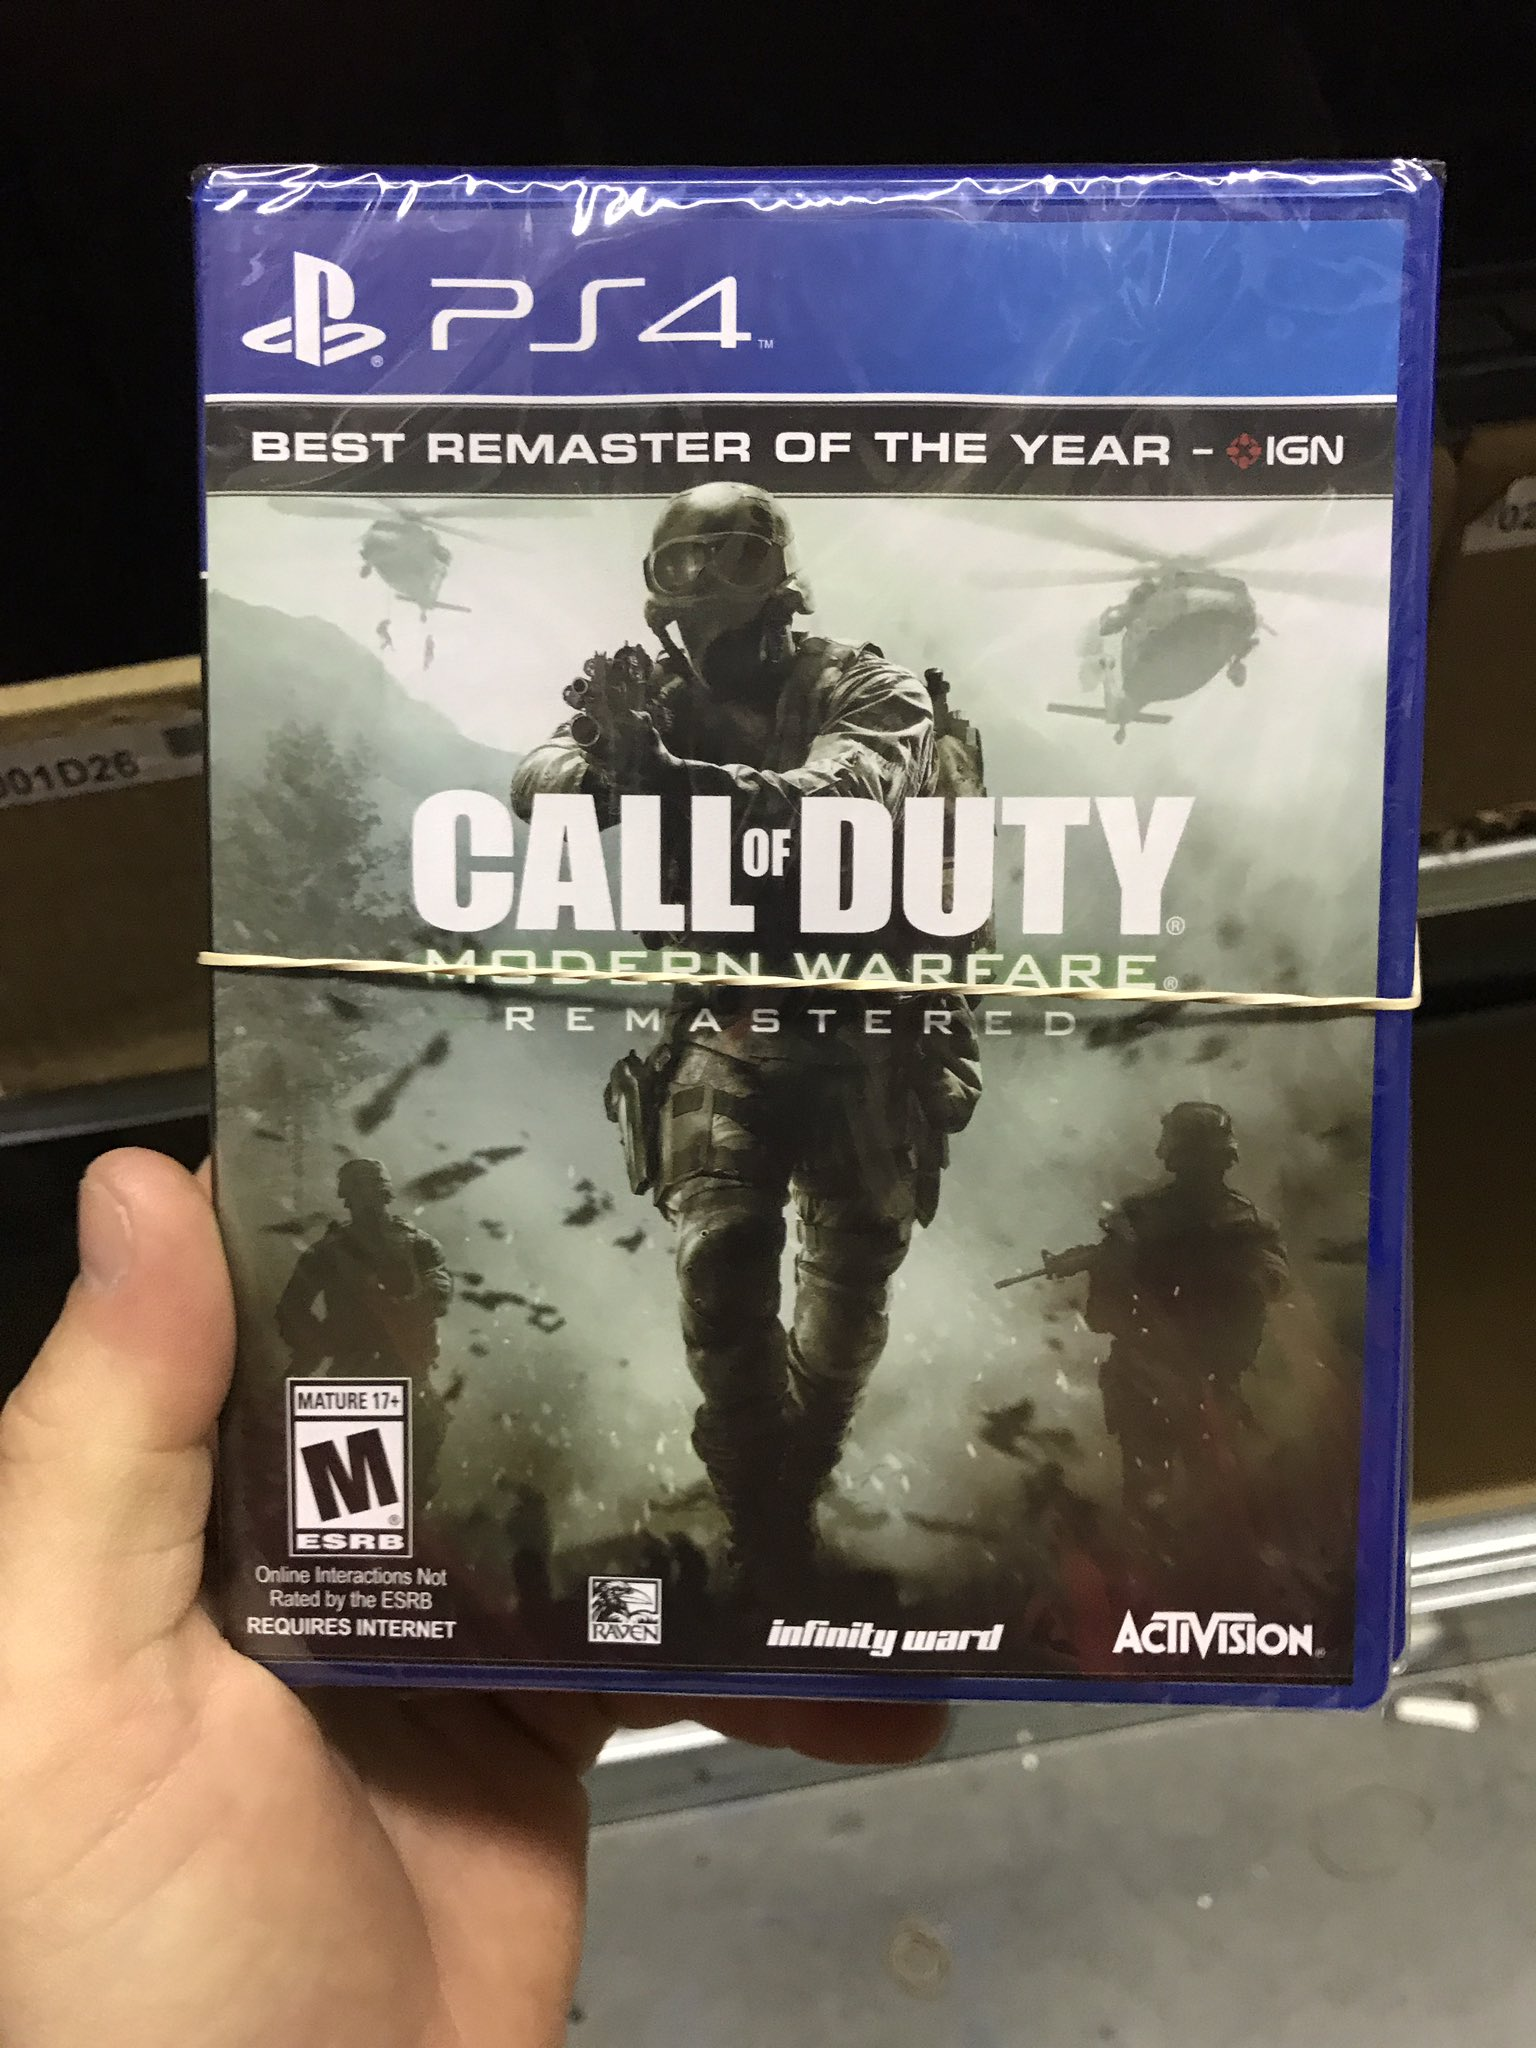 Modern Warfare Remastered Game Case Revealed Reportedly Available June 27 Charlie INTEL